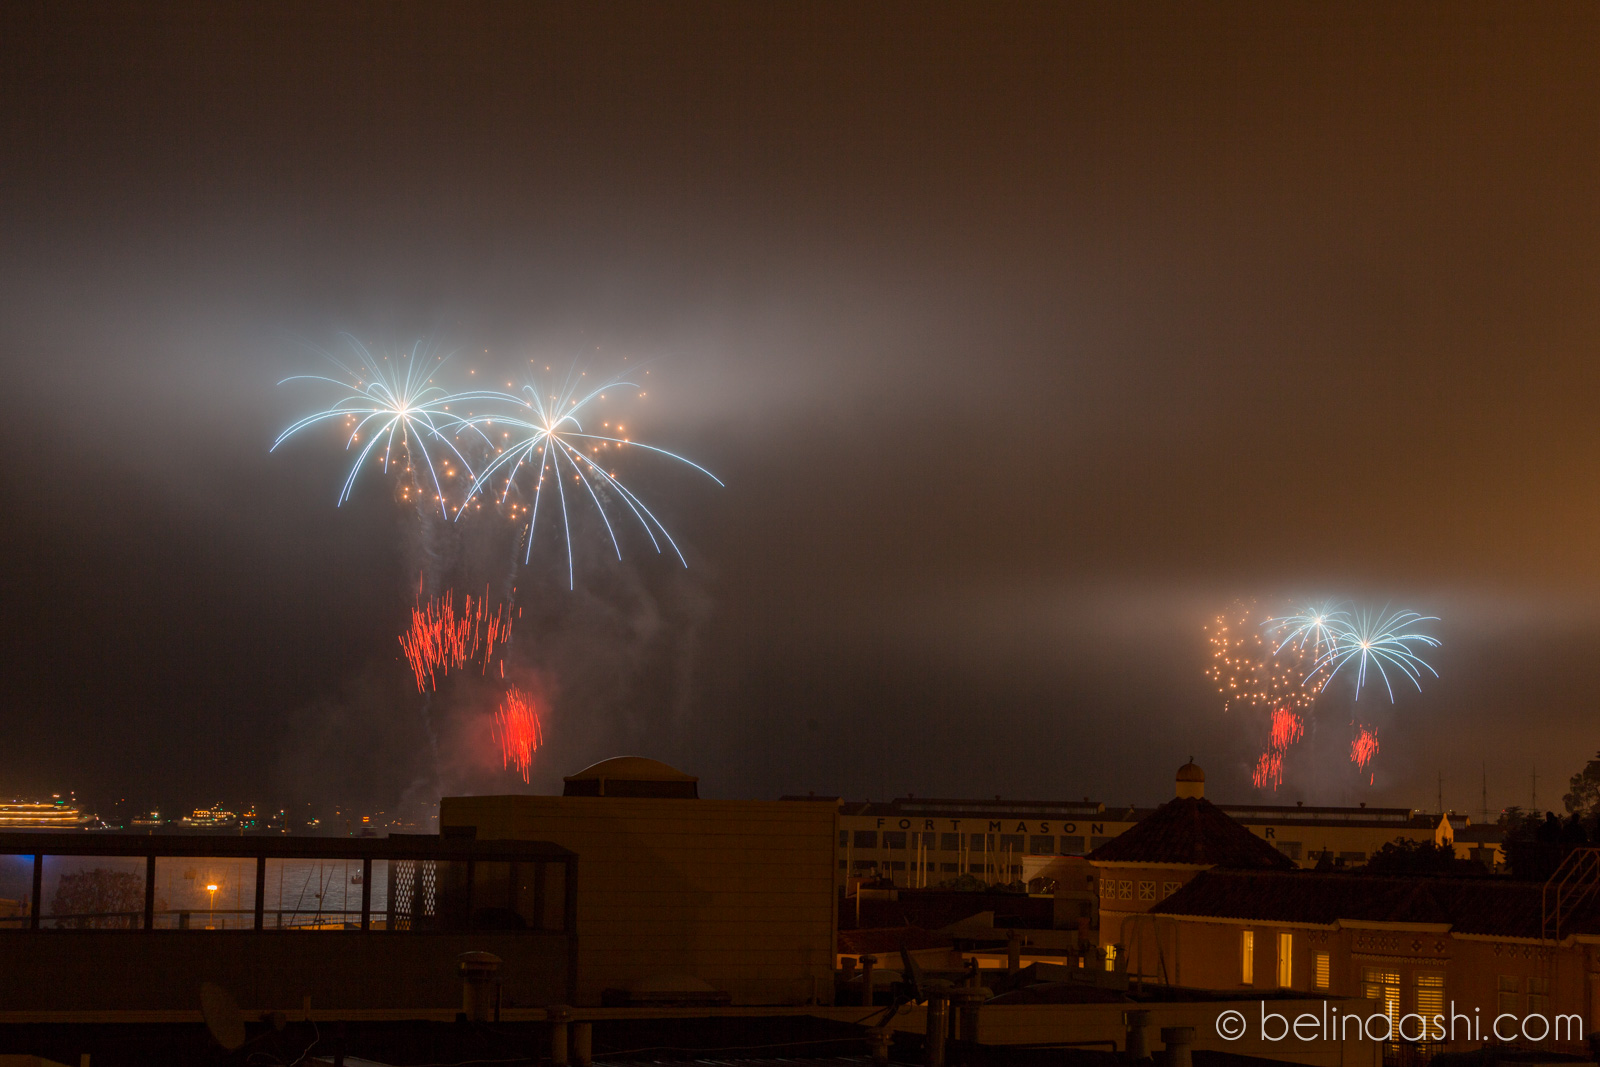 July 4th fireworks in San Francisco 2014-009, ISO200, 70mm, f/9, 2.5sec